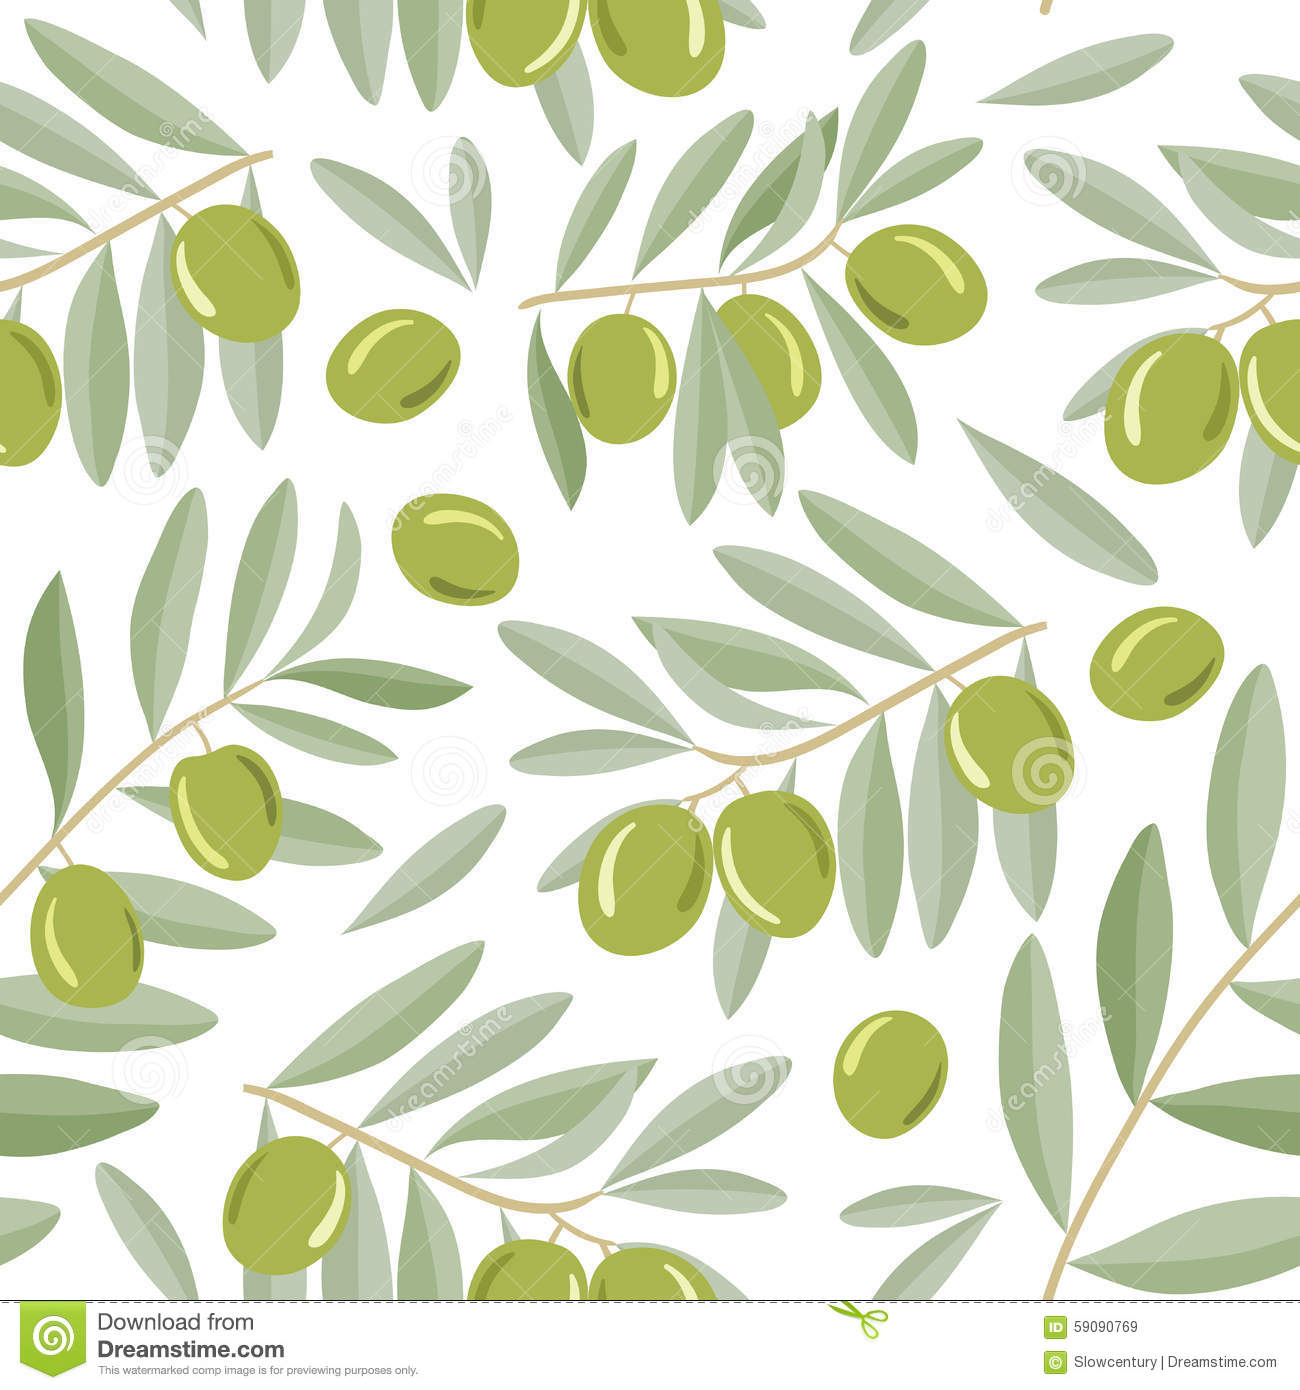 green olive designs with wallpapers - photo #14